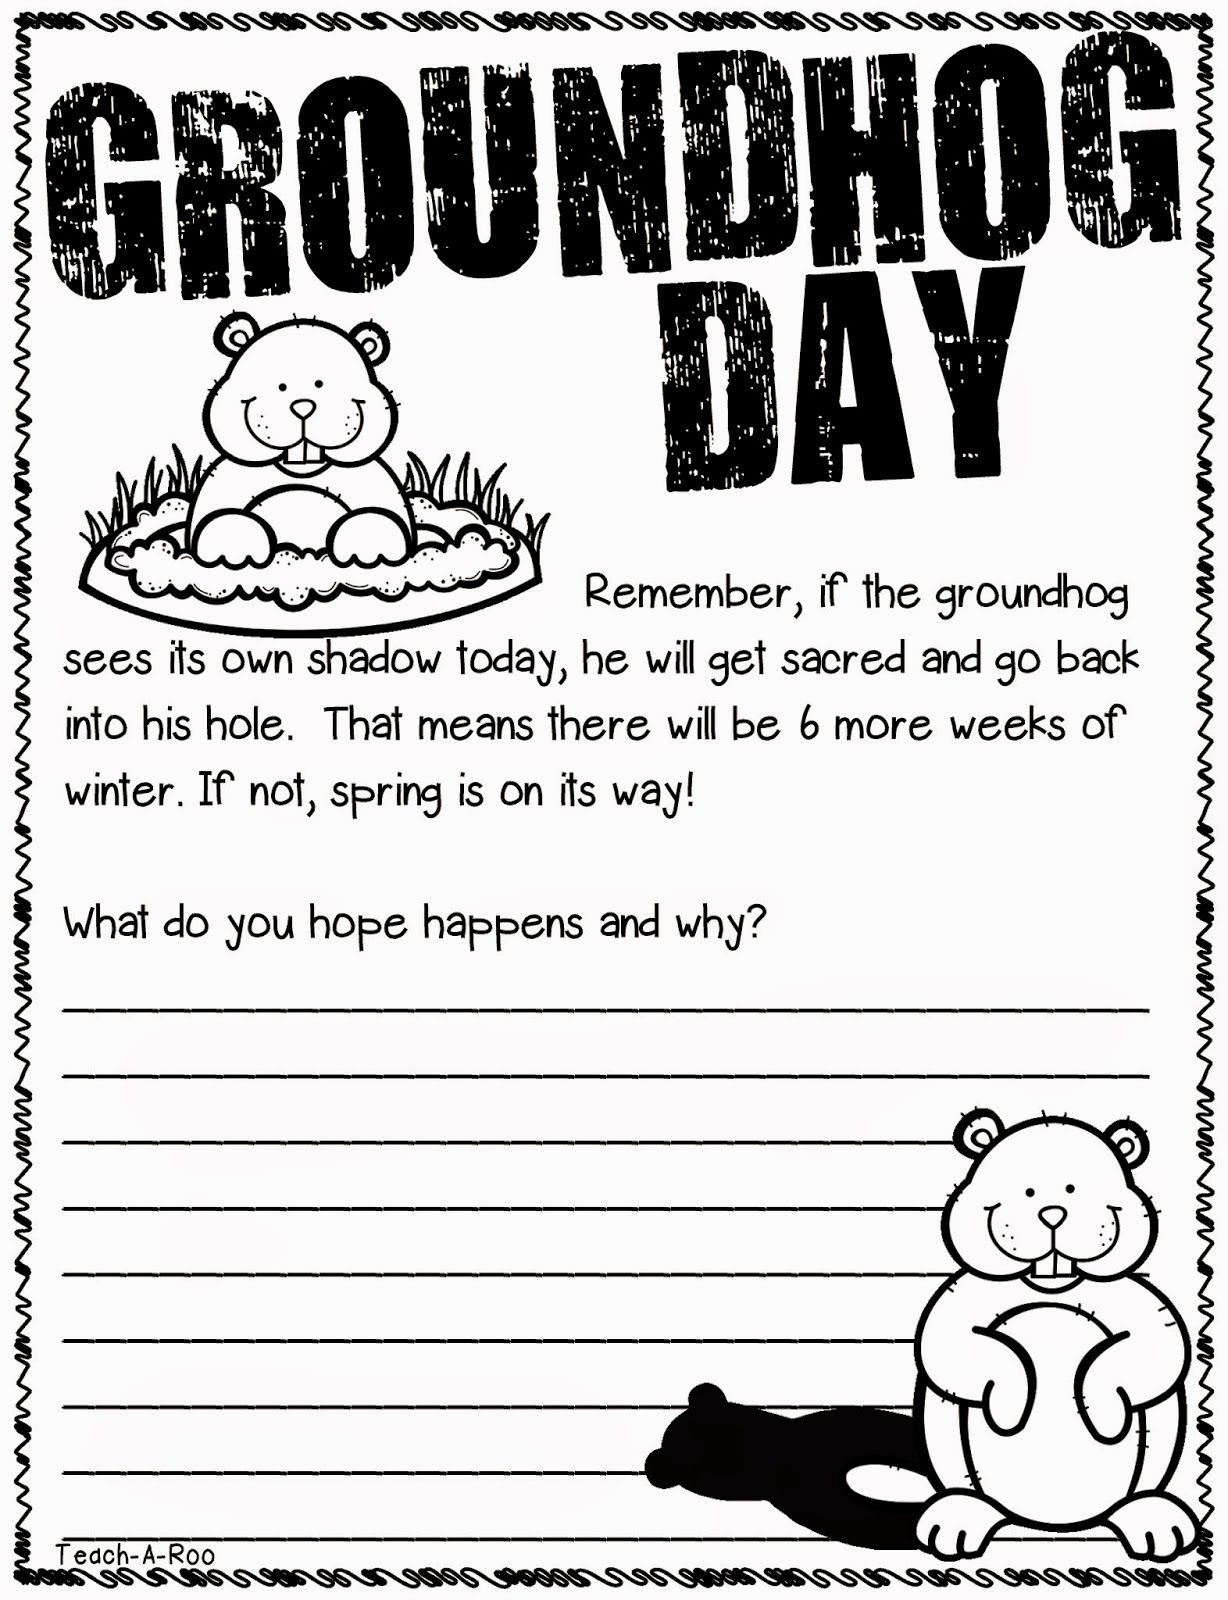 writing activity for groundhog day educational writing activity for groundhog day